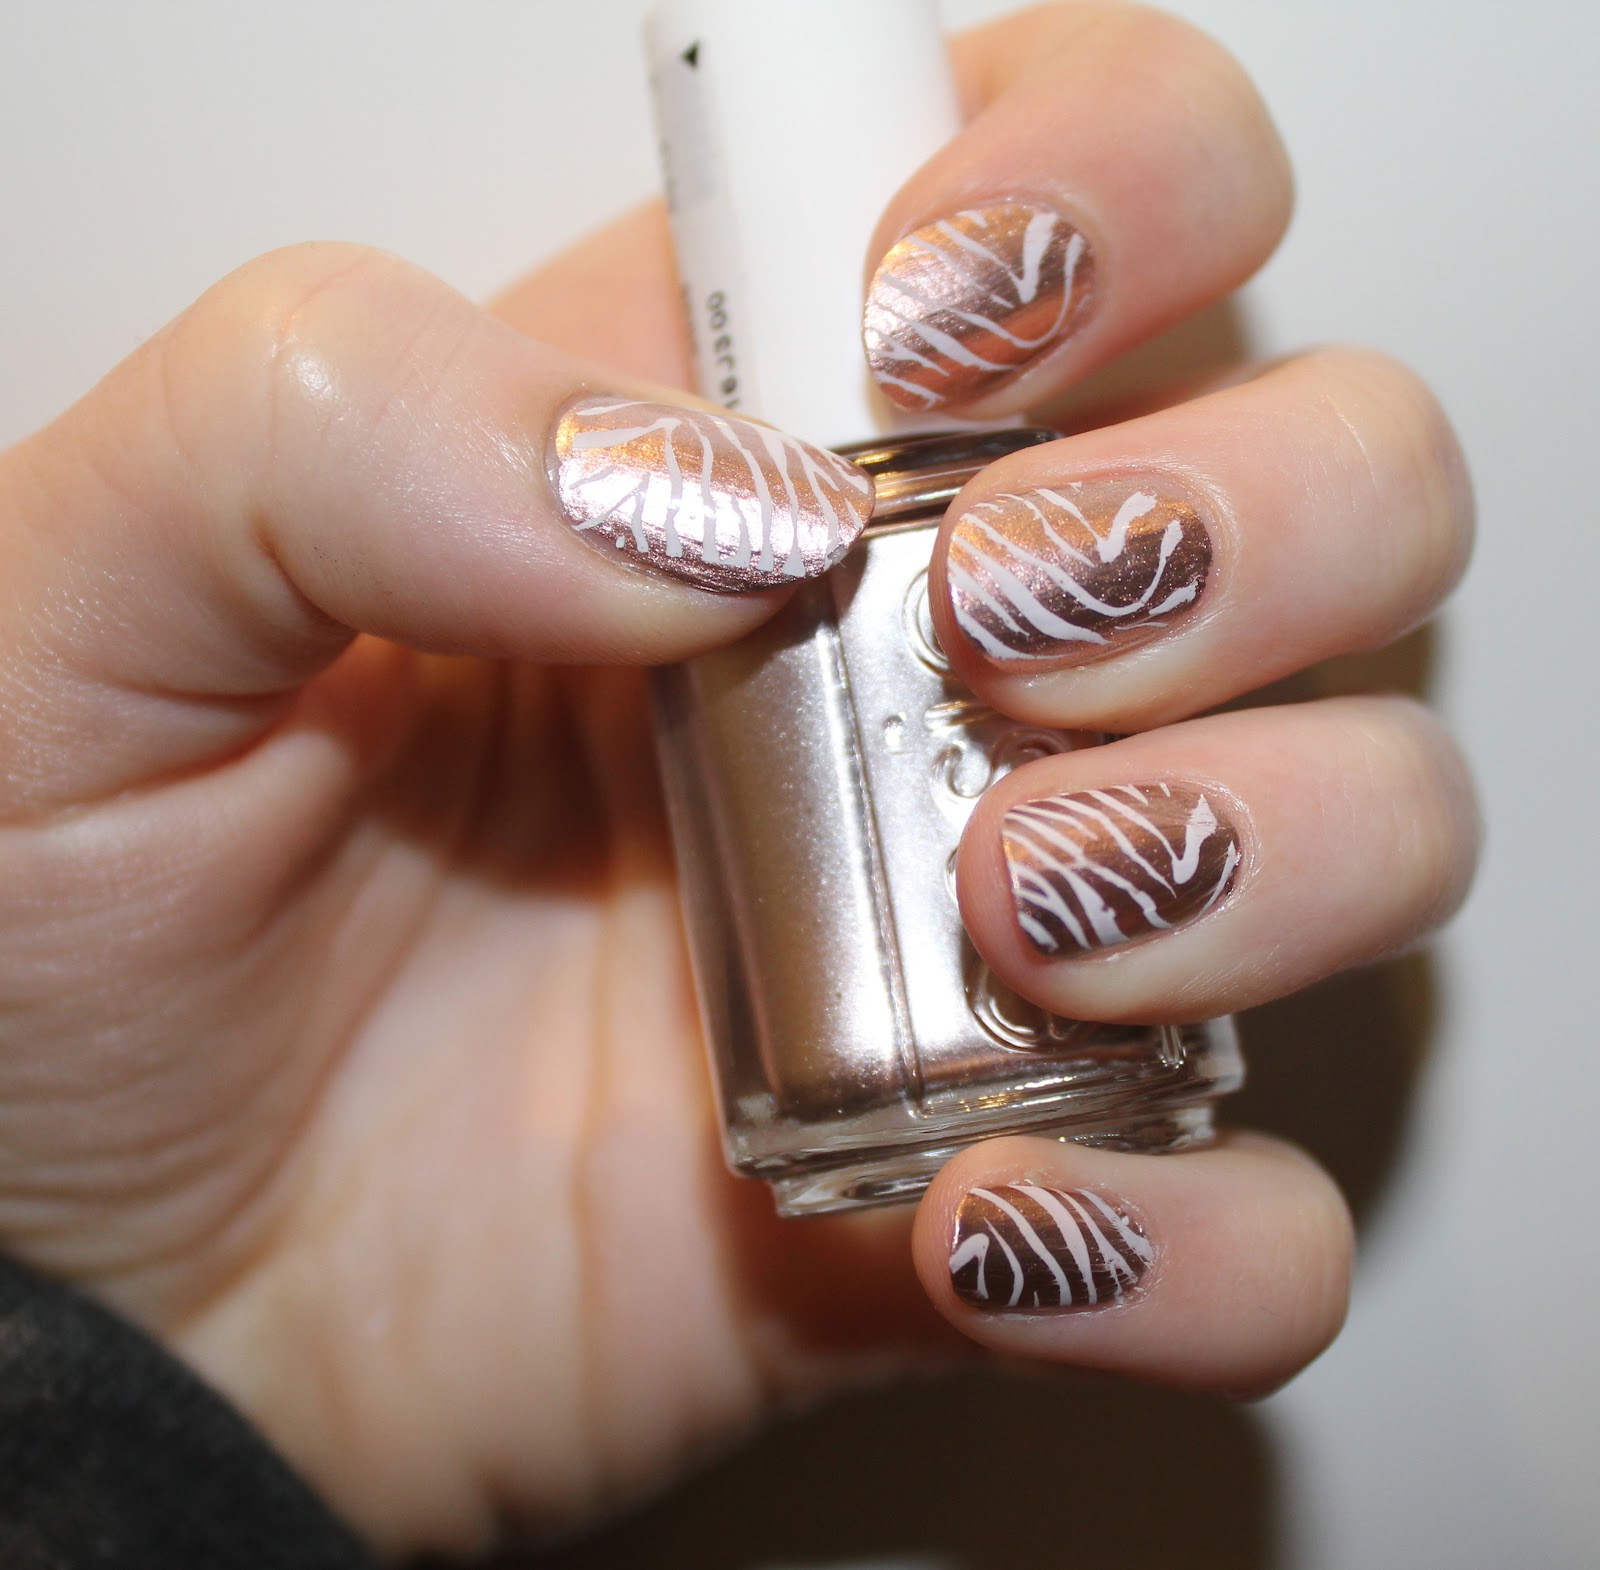 Passion For Makeup: Nail Of The Day - Rose Gold Zebra